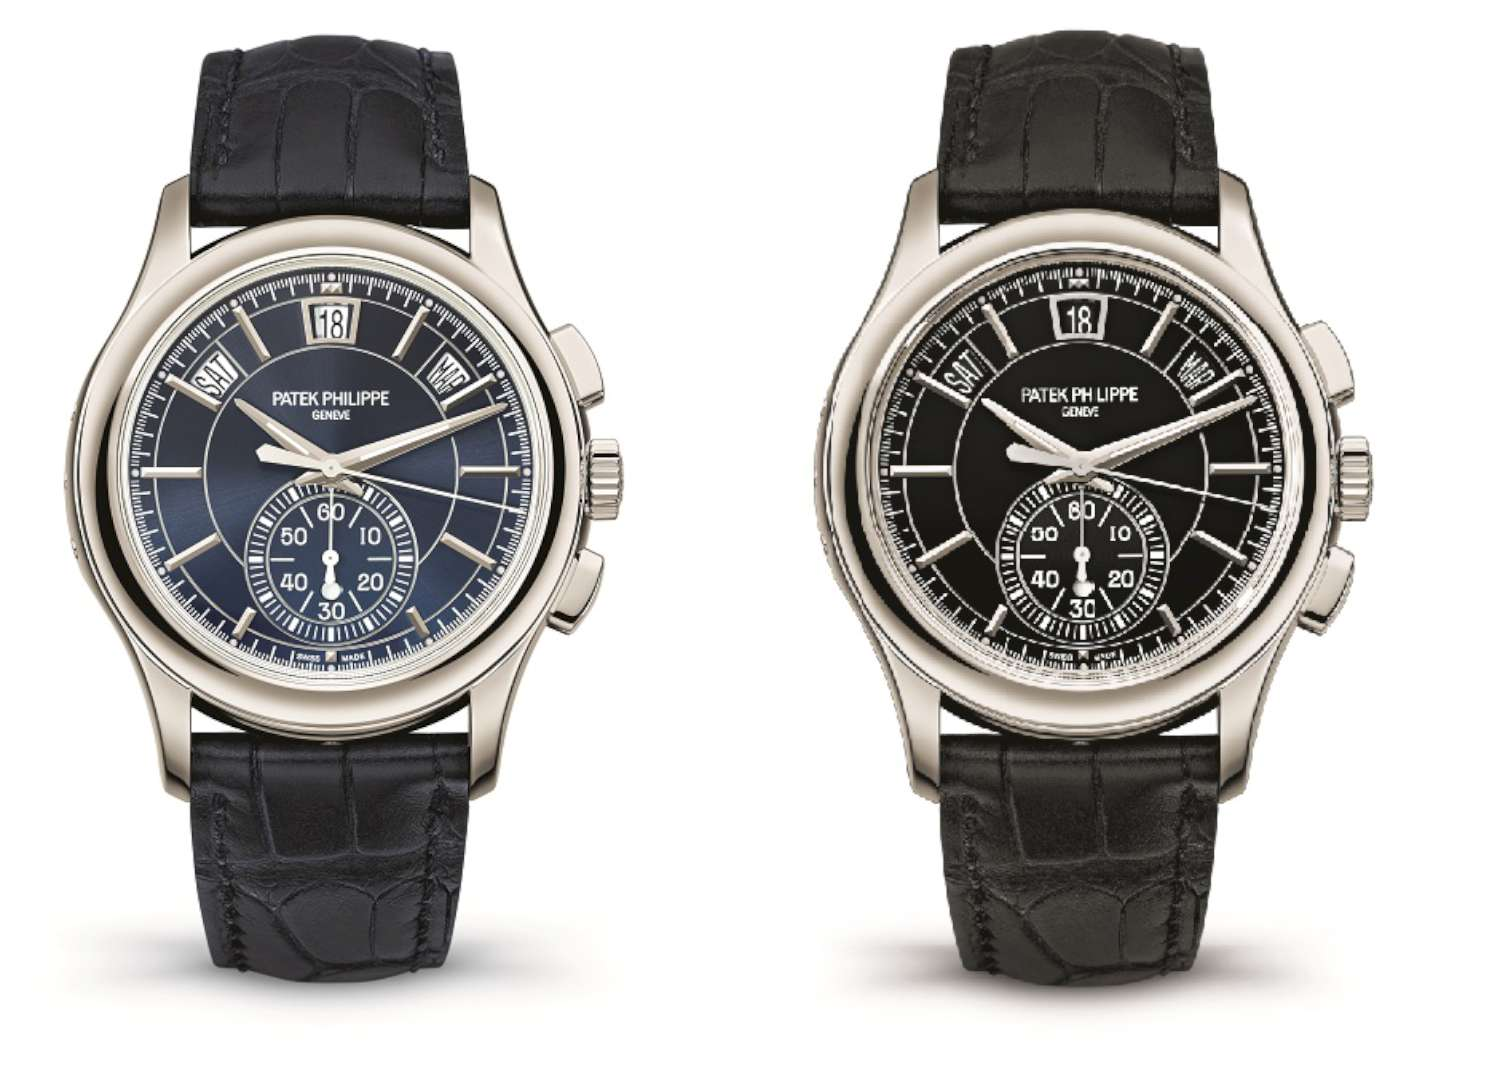 low_5905P_001_two_watches-1500